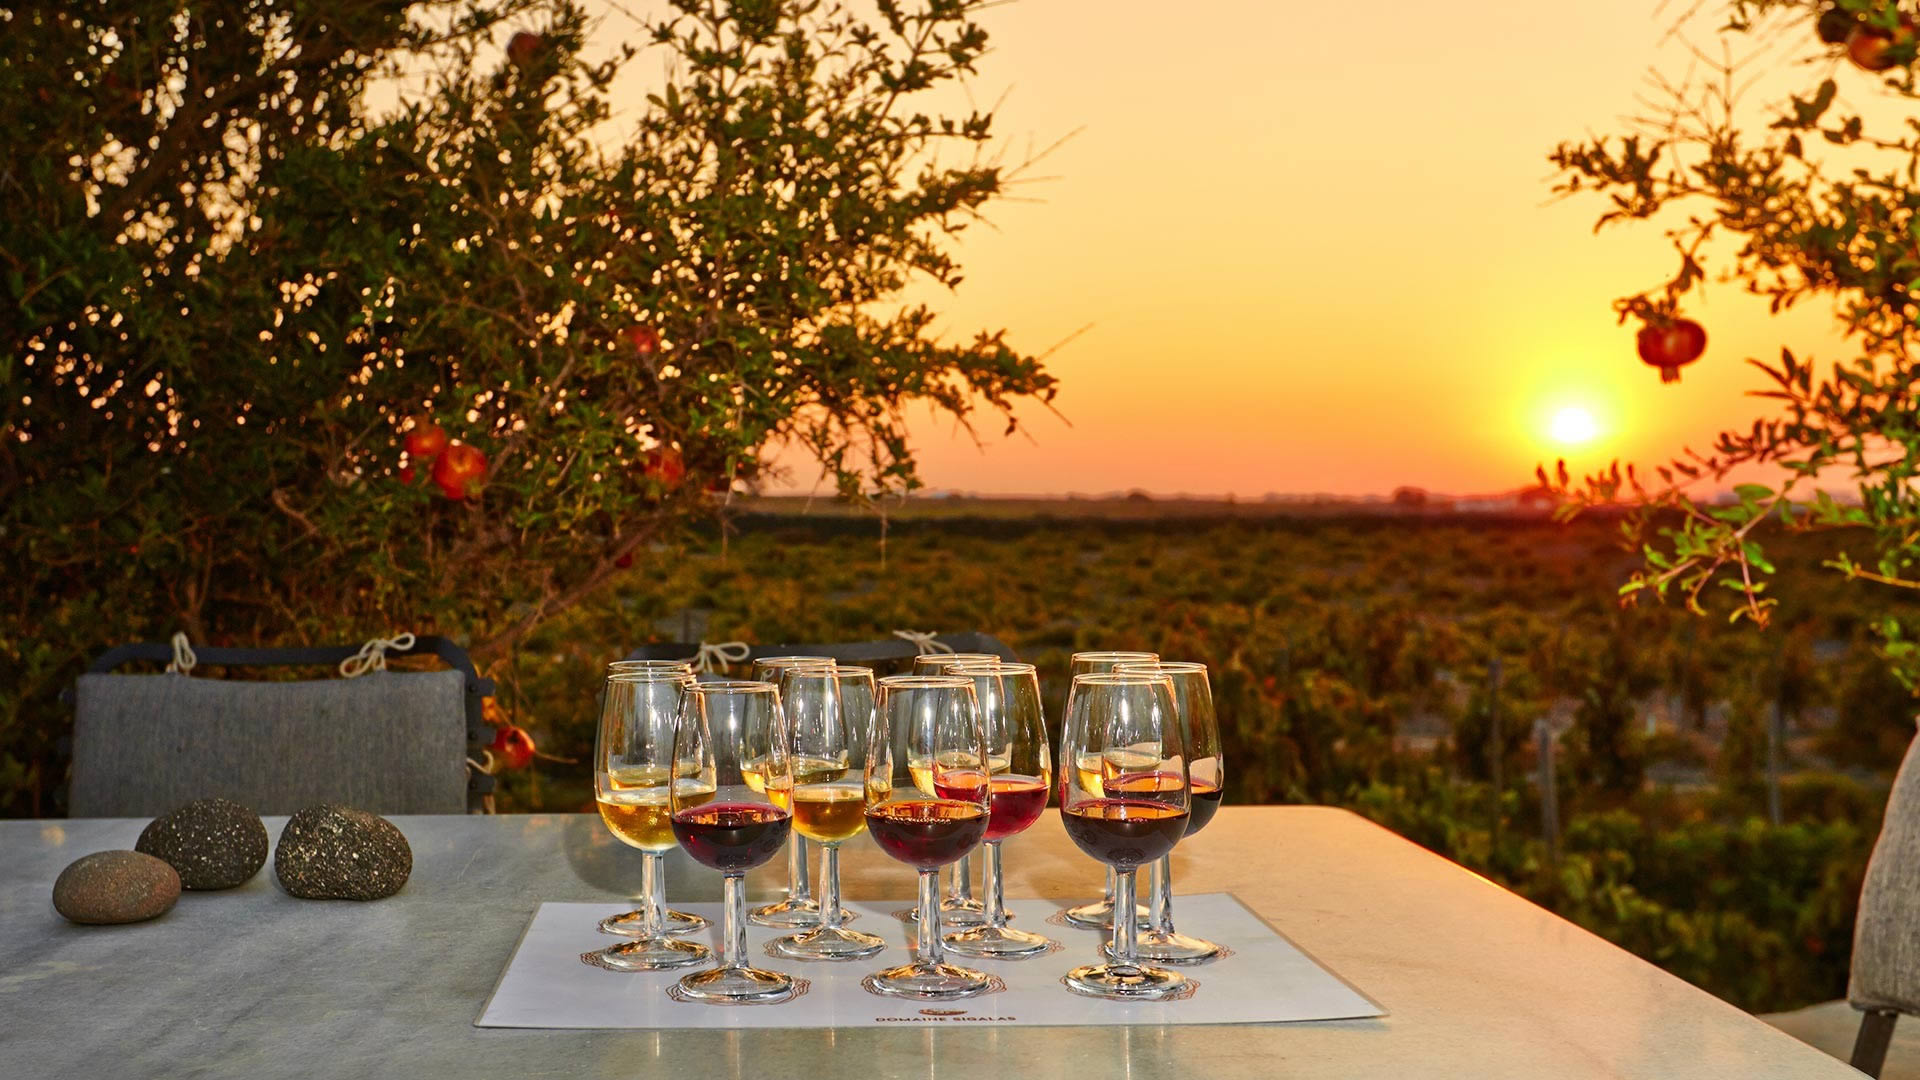 THE HISTORY OF GREEK WINE